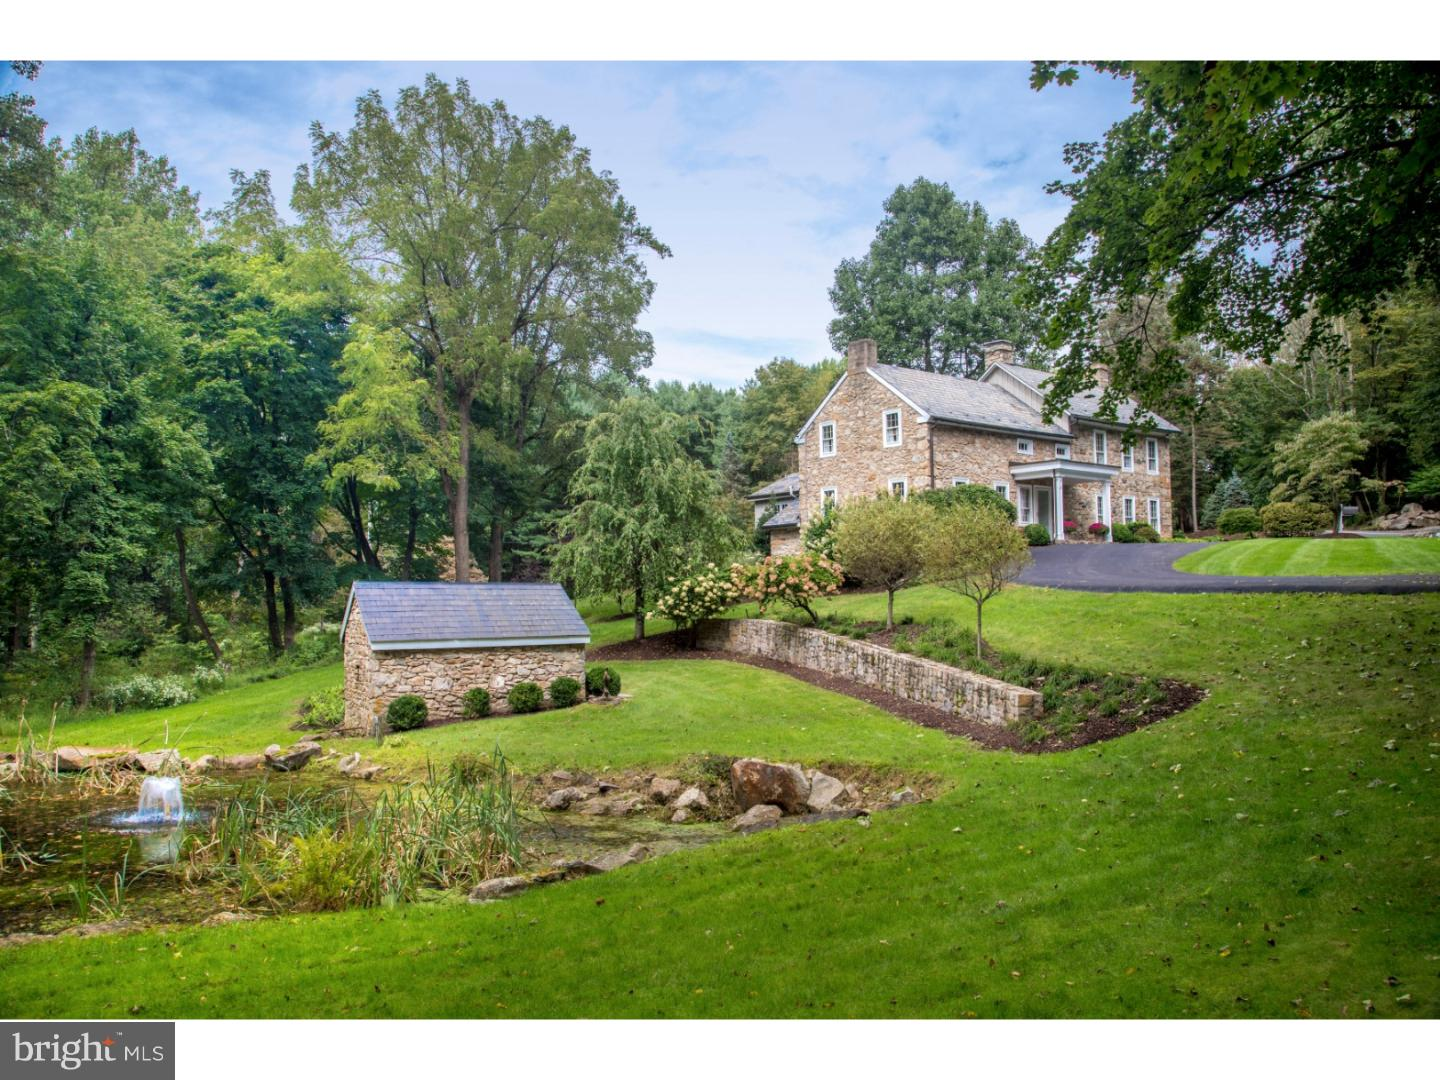 2807 WASSERGASS ROAD, HELLERTOWN, PA 18055